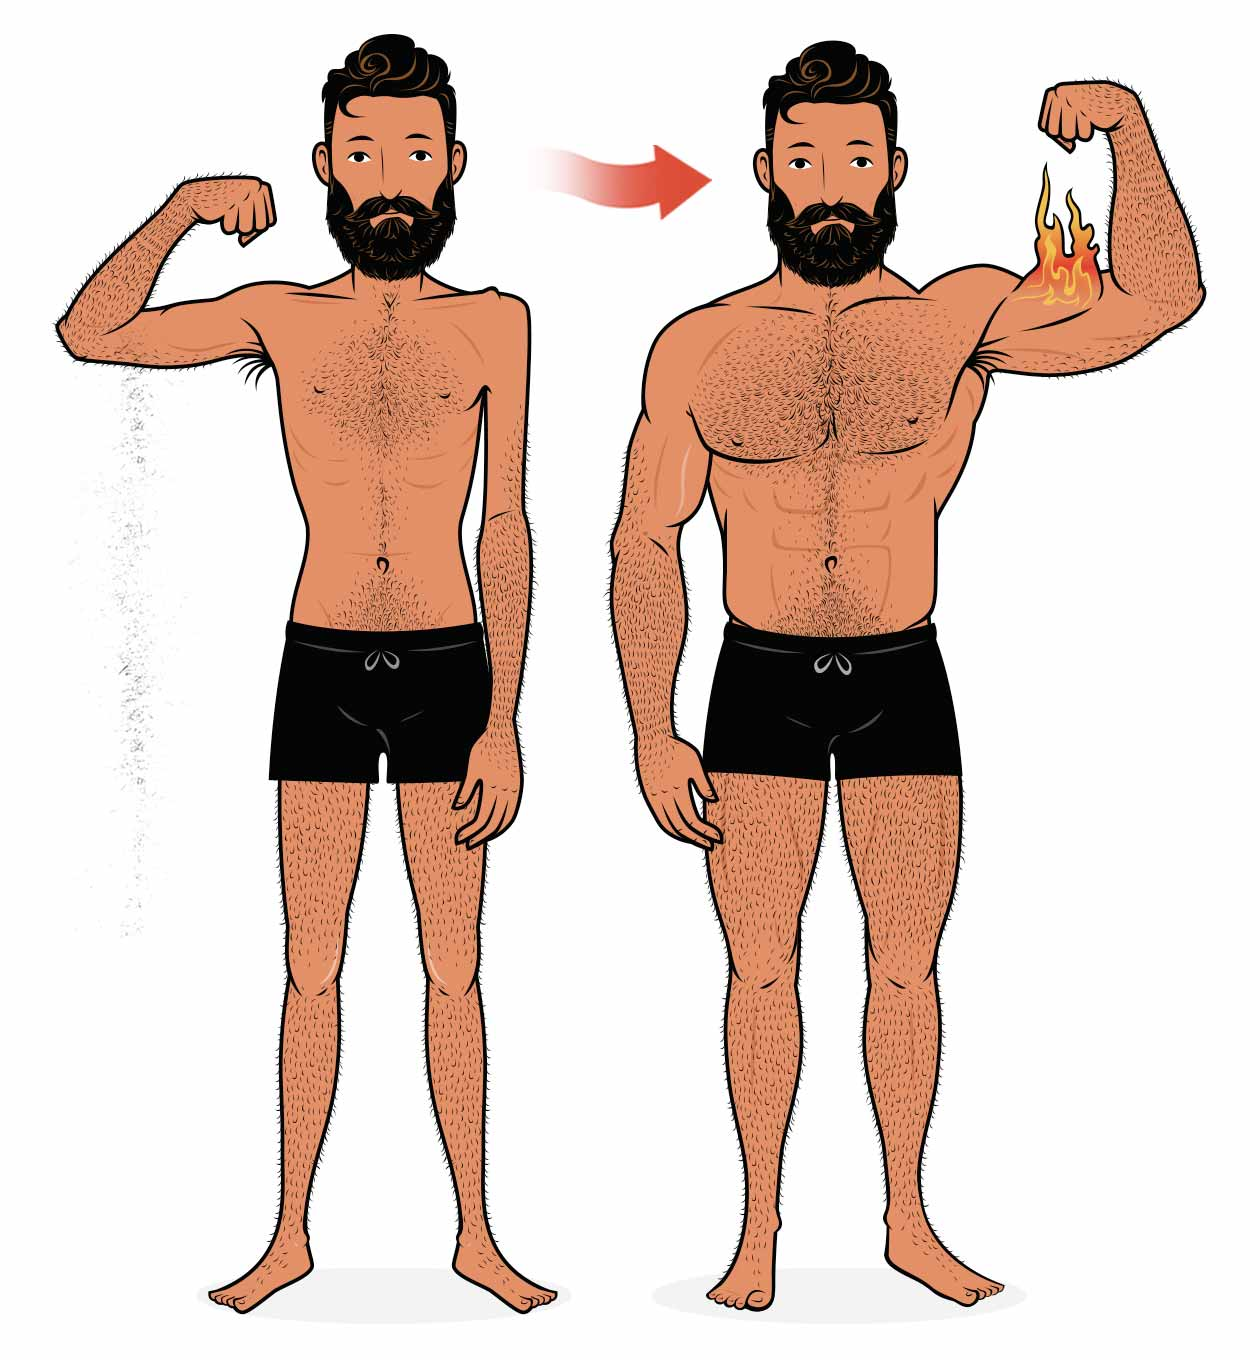 Outlift illustration showing a skinny guy building muscle and becoming muscular.